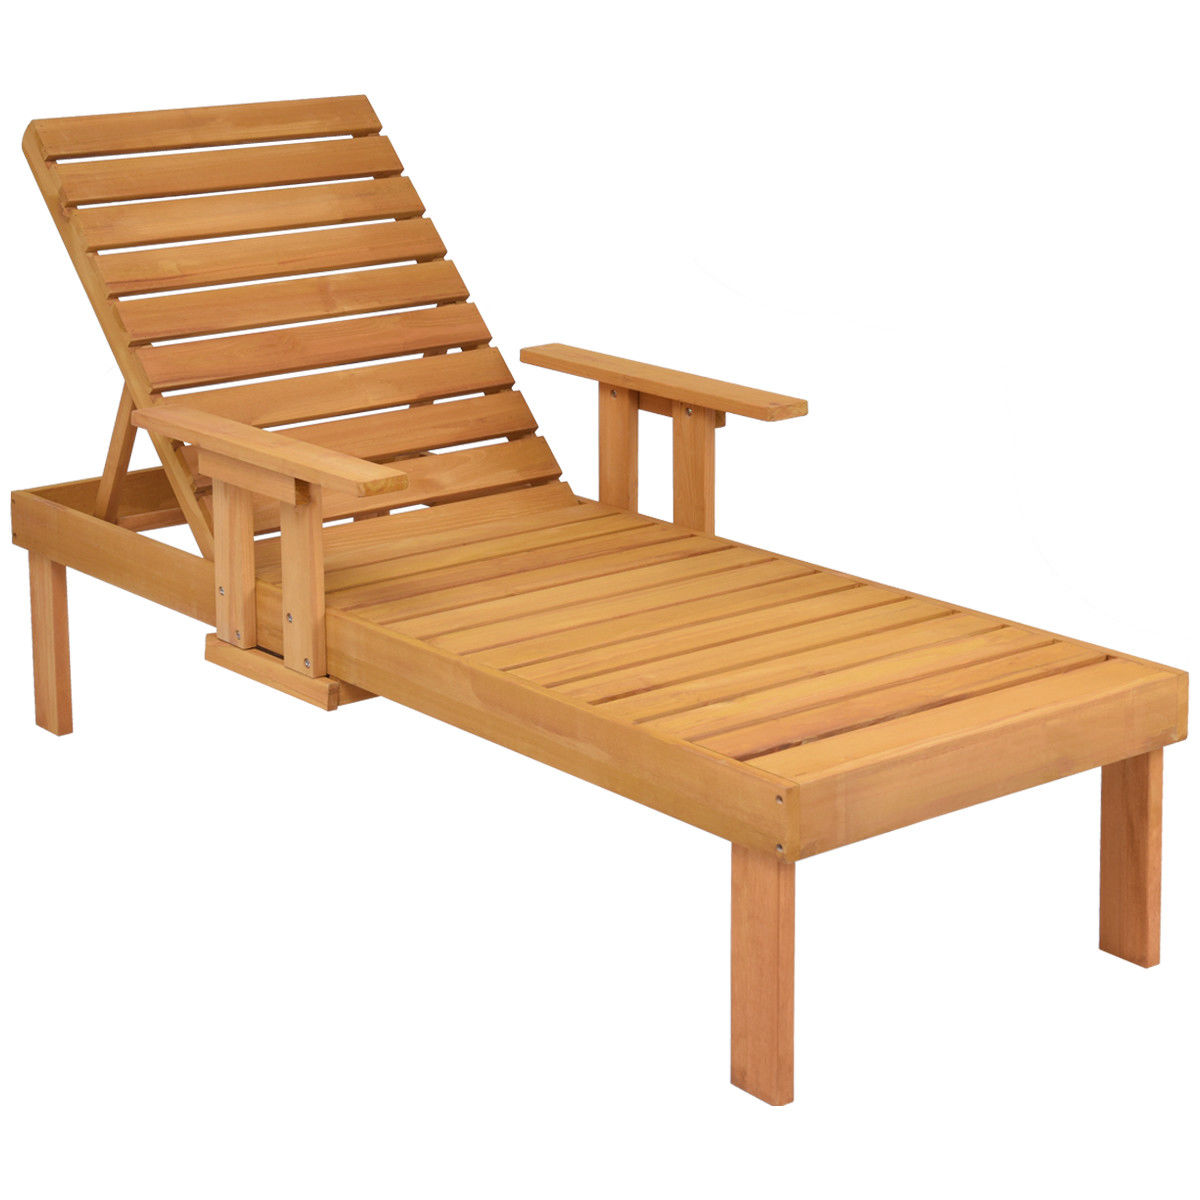 wood beach chairs plastic kids table and gymax patio chaise sun lounger outdoor garden side tray deck chair